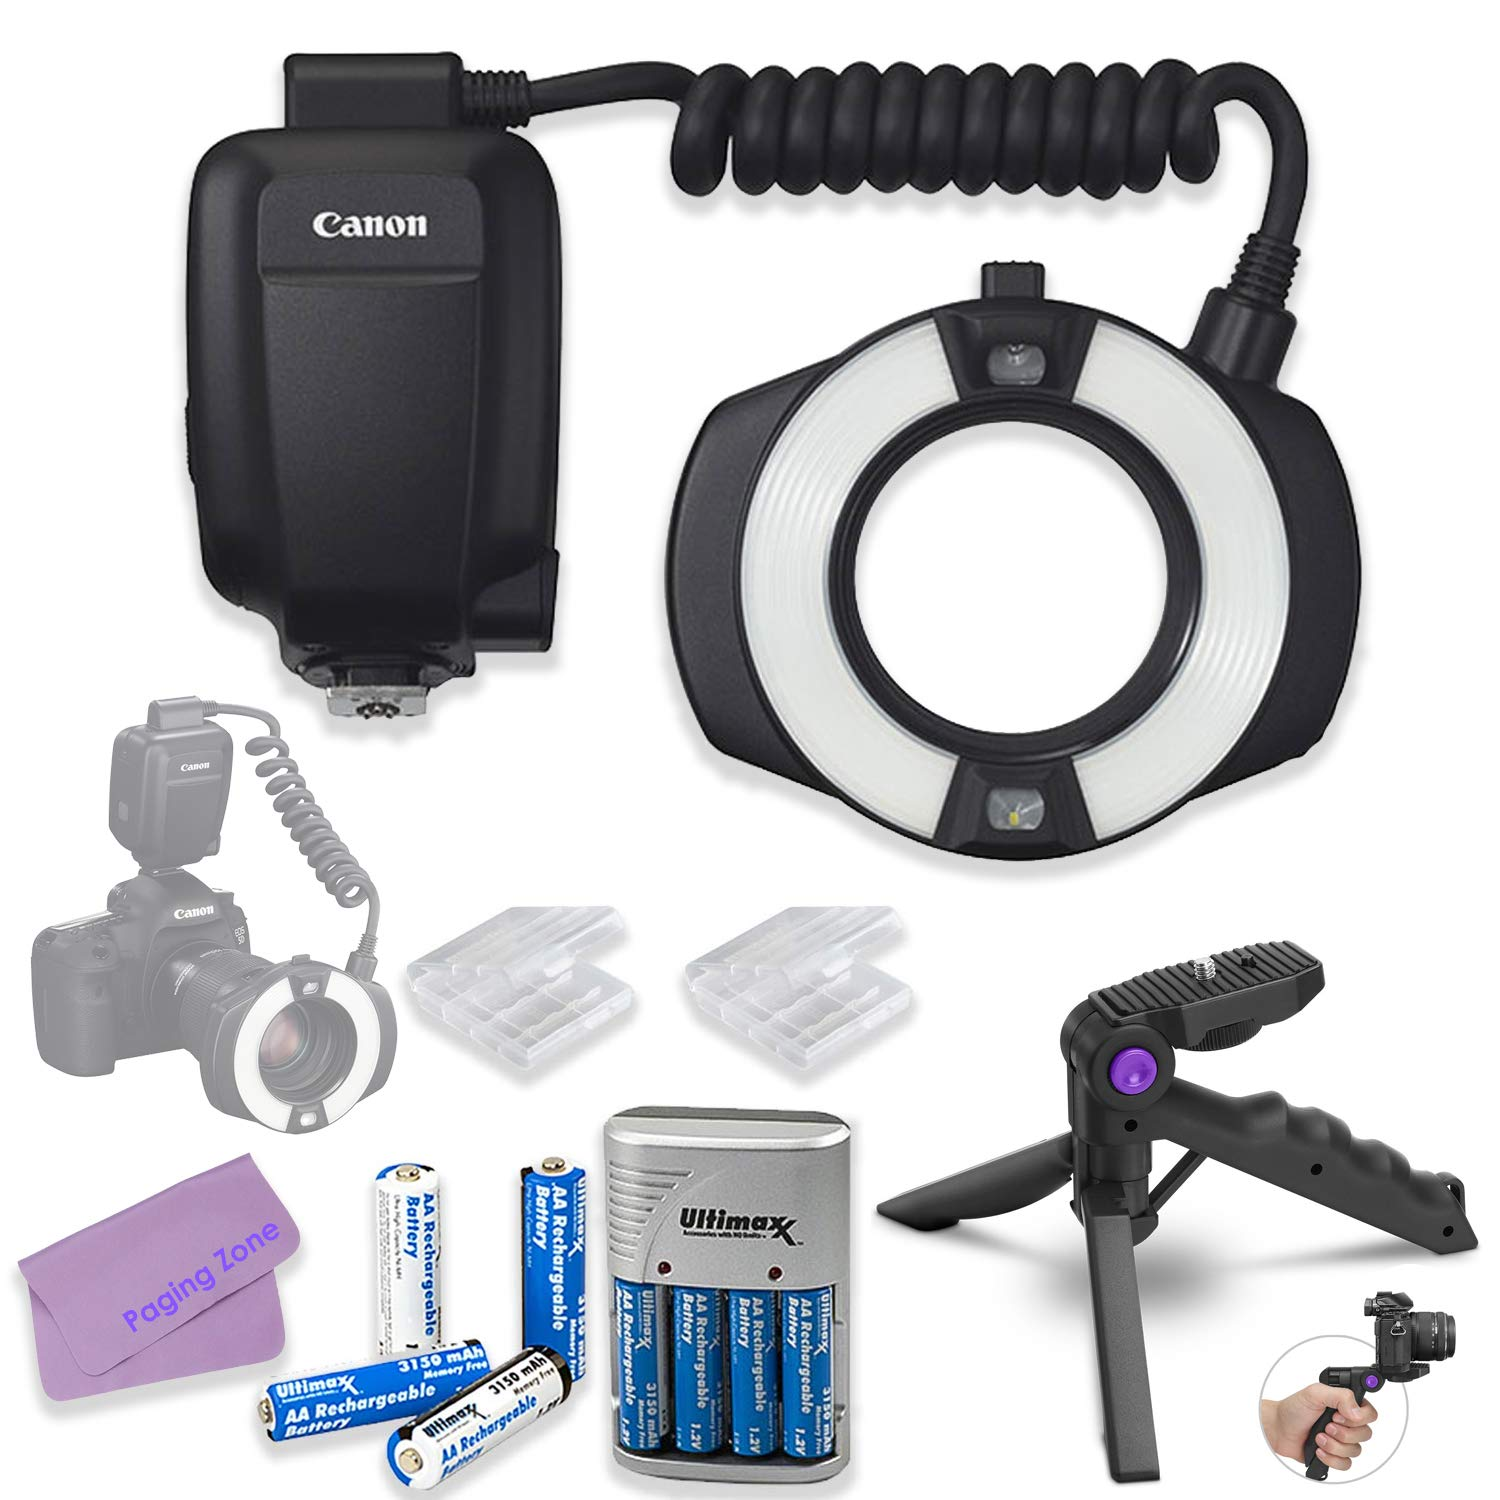 Canon MR-14EX II Macro Ring Lite Bundle with AA Batteries & Charger + Steady Grip Tripod